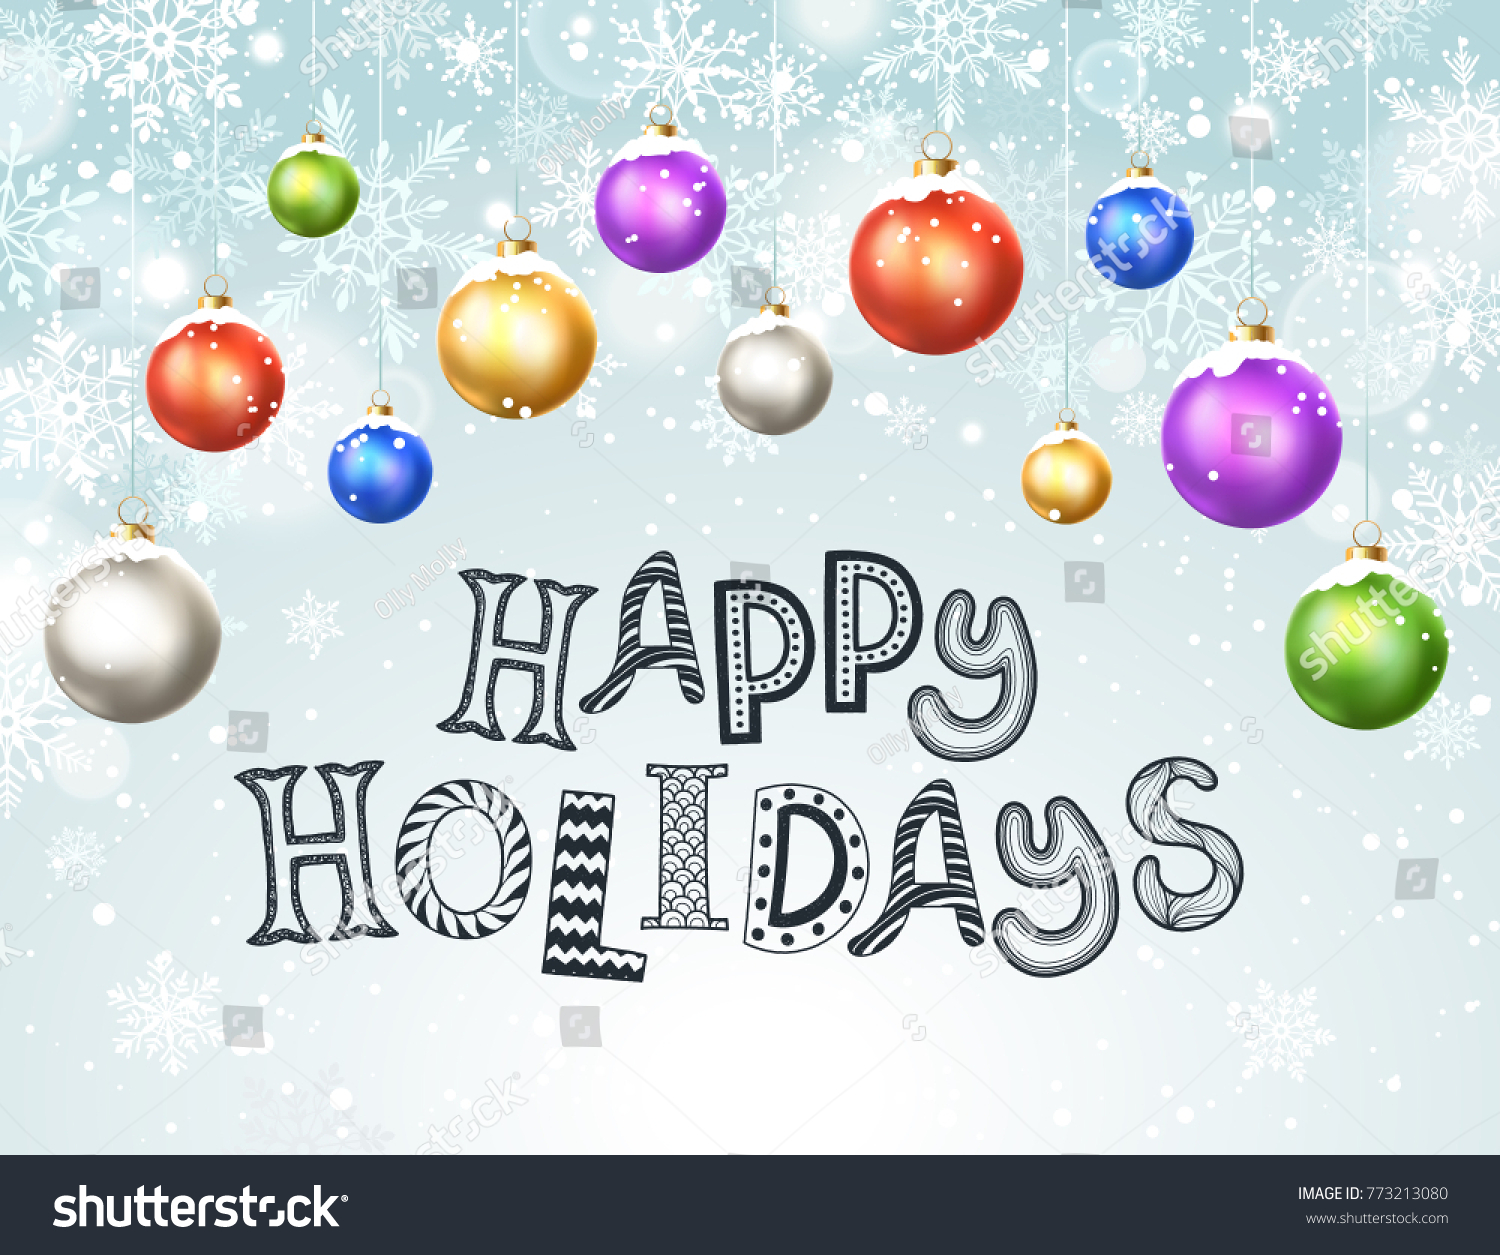 Happy holidays greeting card template modern stock vector royalty happy holidays greeting card template modern new year christmas balls with snowflakes on blue background m4hsunfo